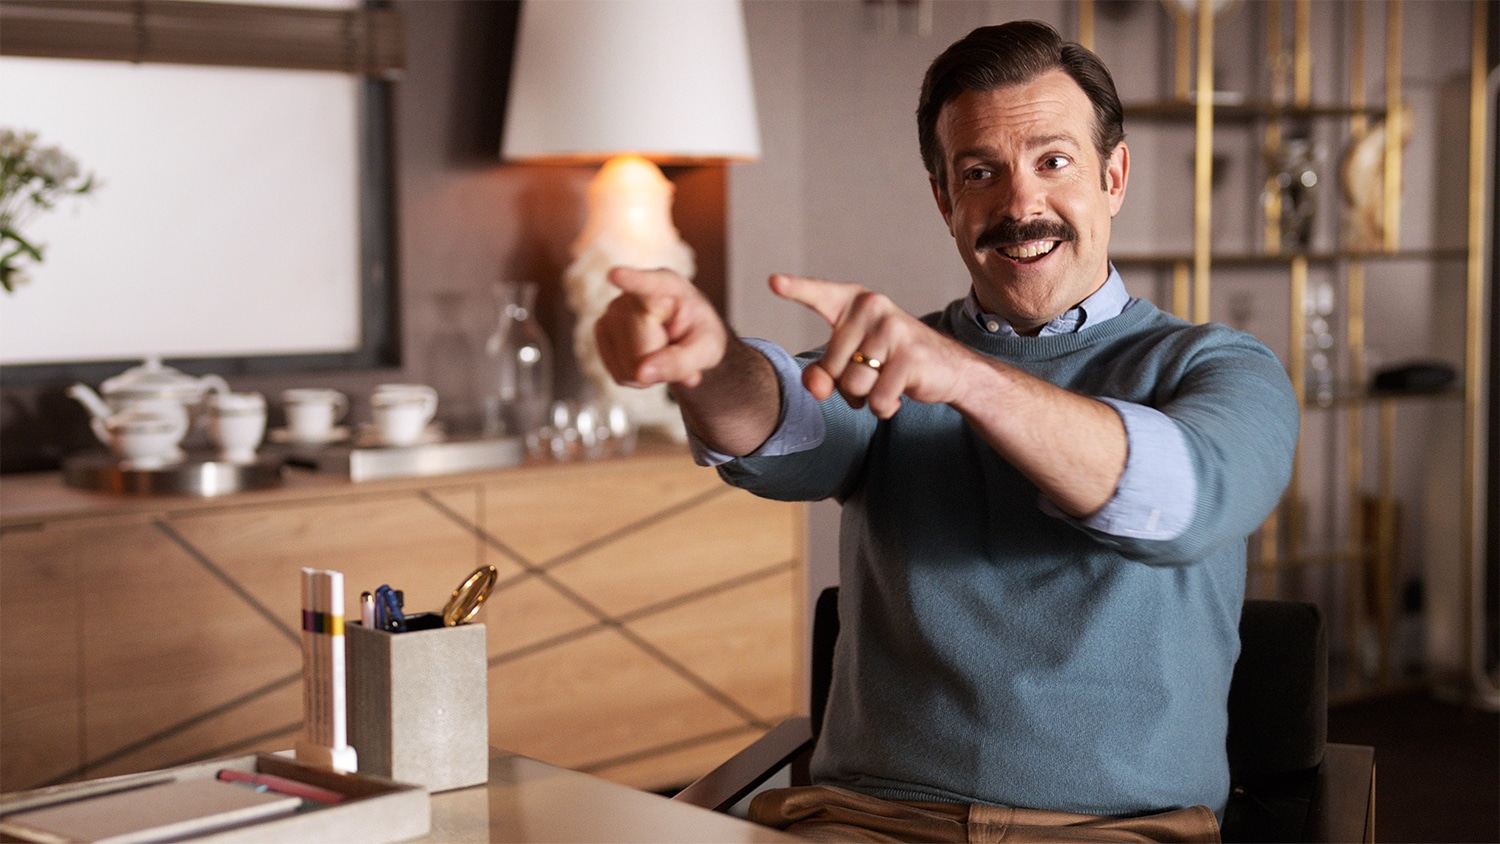 after season 1 & 2 on Apple TV+ What the Ted Lasso Discourse Says About How We Watch Television